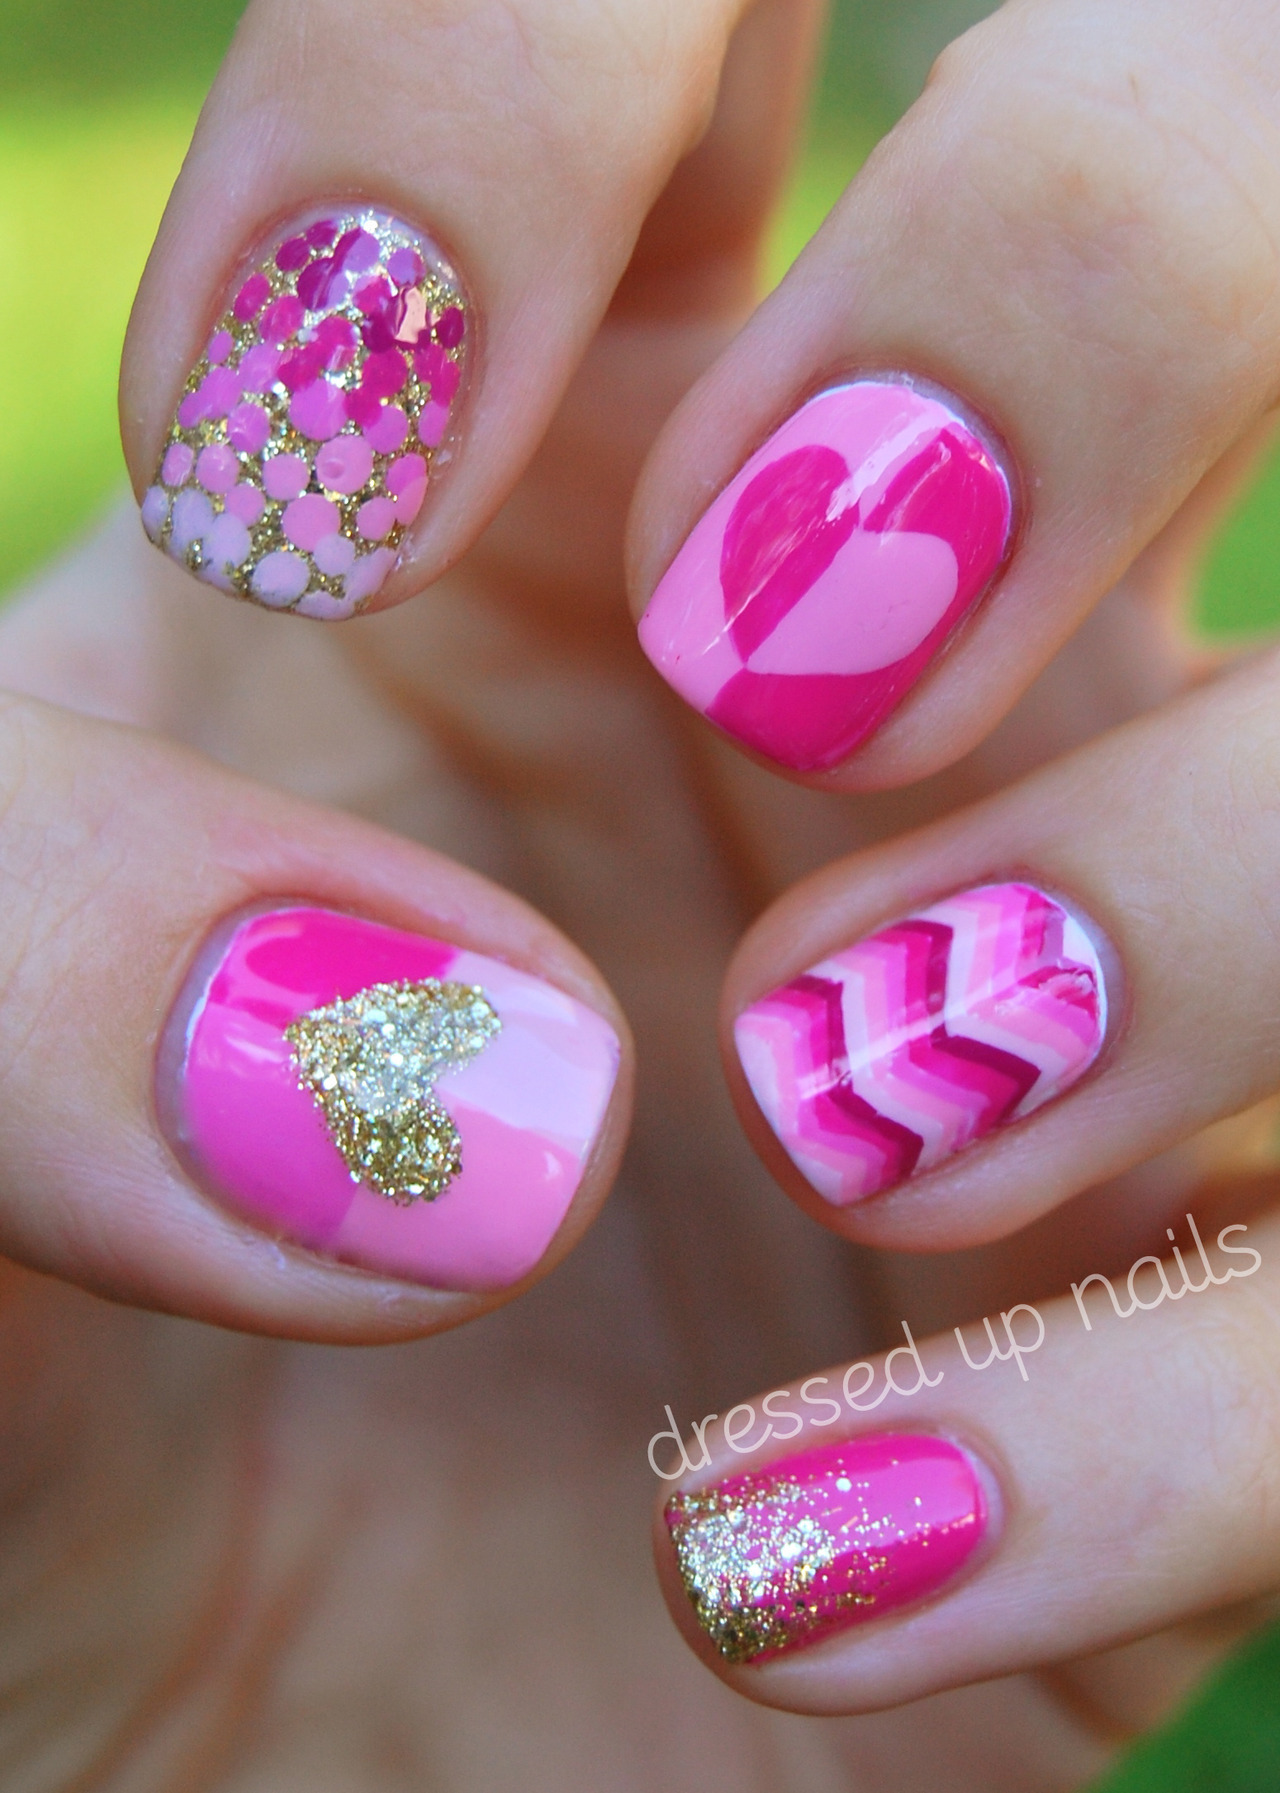 dressedupnails:  HEY GUYS! Sorry I've been quiet the last few days, I did these last Thursday so usually y'all woulda seen them on Friday but they were for a guest post for Carrie (the creator of Sassy Lacquer) so I couldn't show you until today! Carrie is doing a month full of pink and gold manis for BCA and posted in our polish group asking for contributors and I volunteered because I've never done a guest post before and it seemed fun! I've been so into fall colors lately that I wasn't super pumped about this color palette at first but I ended up really loving these. Especially that ring fingah, I wanna do a whole mani like that but my god it was SO TIME CONSUMING. Hope y'all like them too! You can read more about them and the colors I used, etc. over at Carrie's blog! Also, are you hanging out with me on Facebook yet?!??!??!?